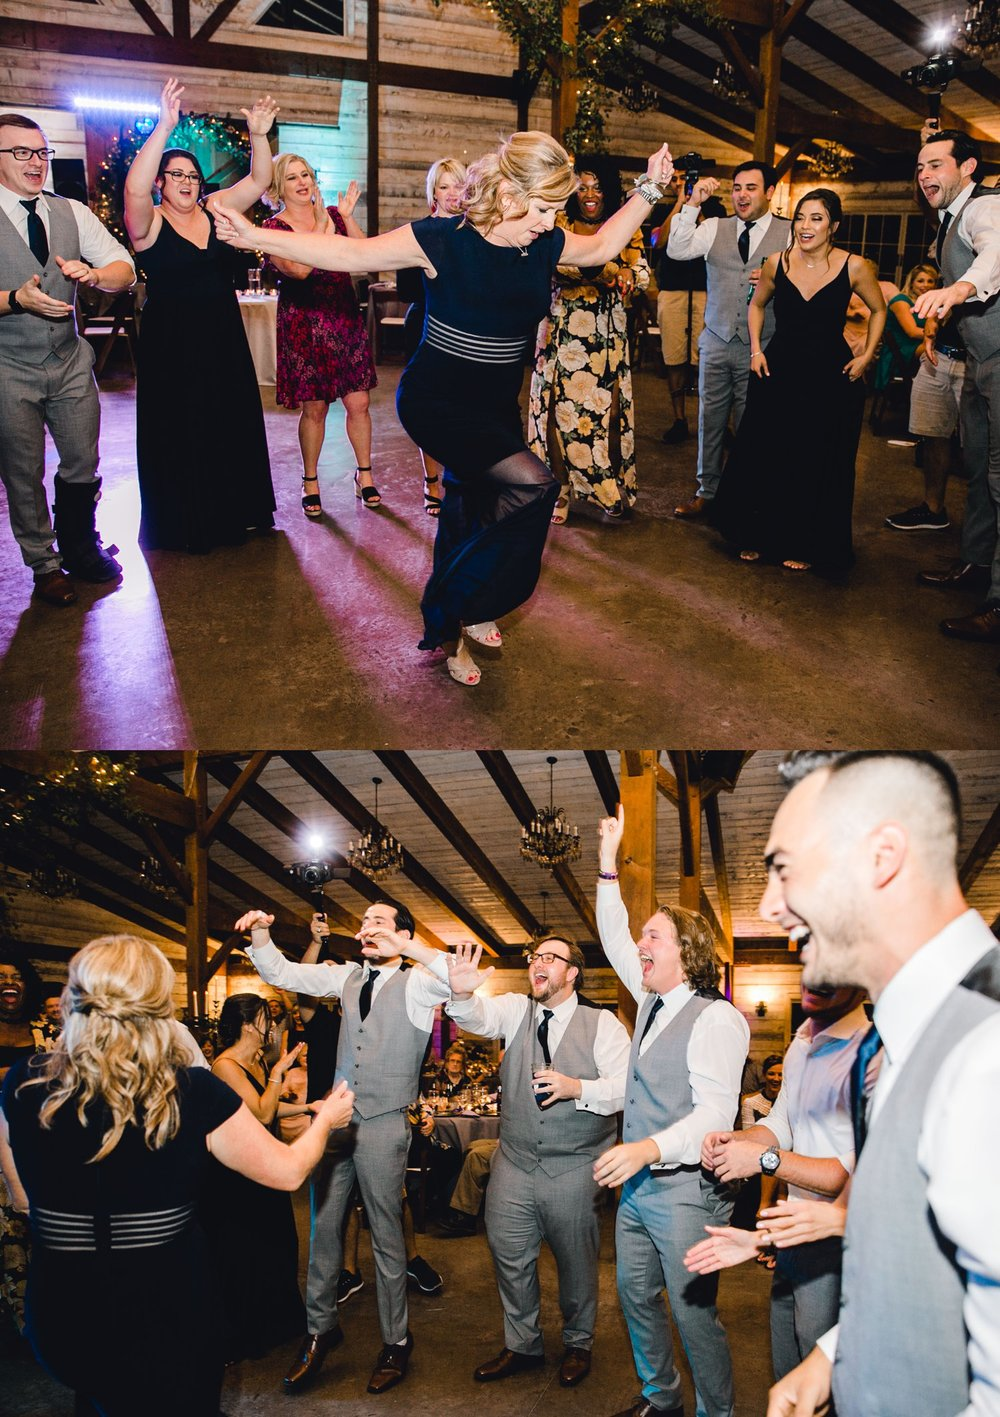 KAITLYN_AND_ZACHARY_HUNT_ALLEEJ_LUBBOCK_WEDDING_PHOTOGRAPHER_EBERLEY_BROOKS_EVENTS_0216.jpg